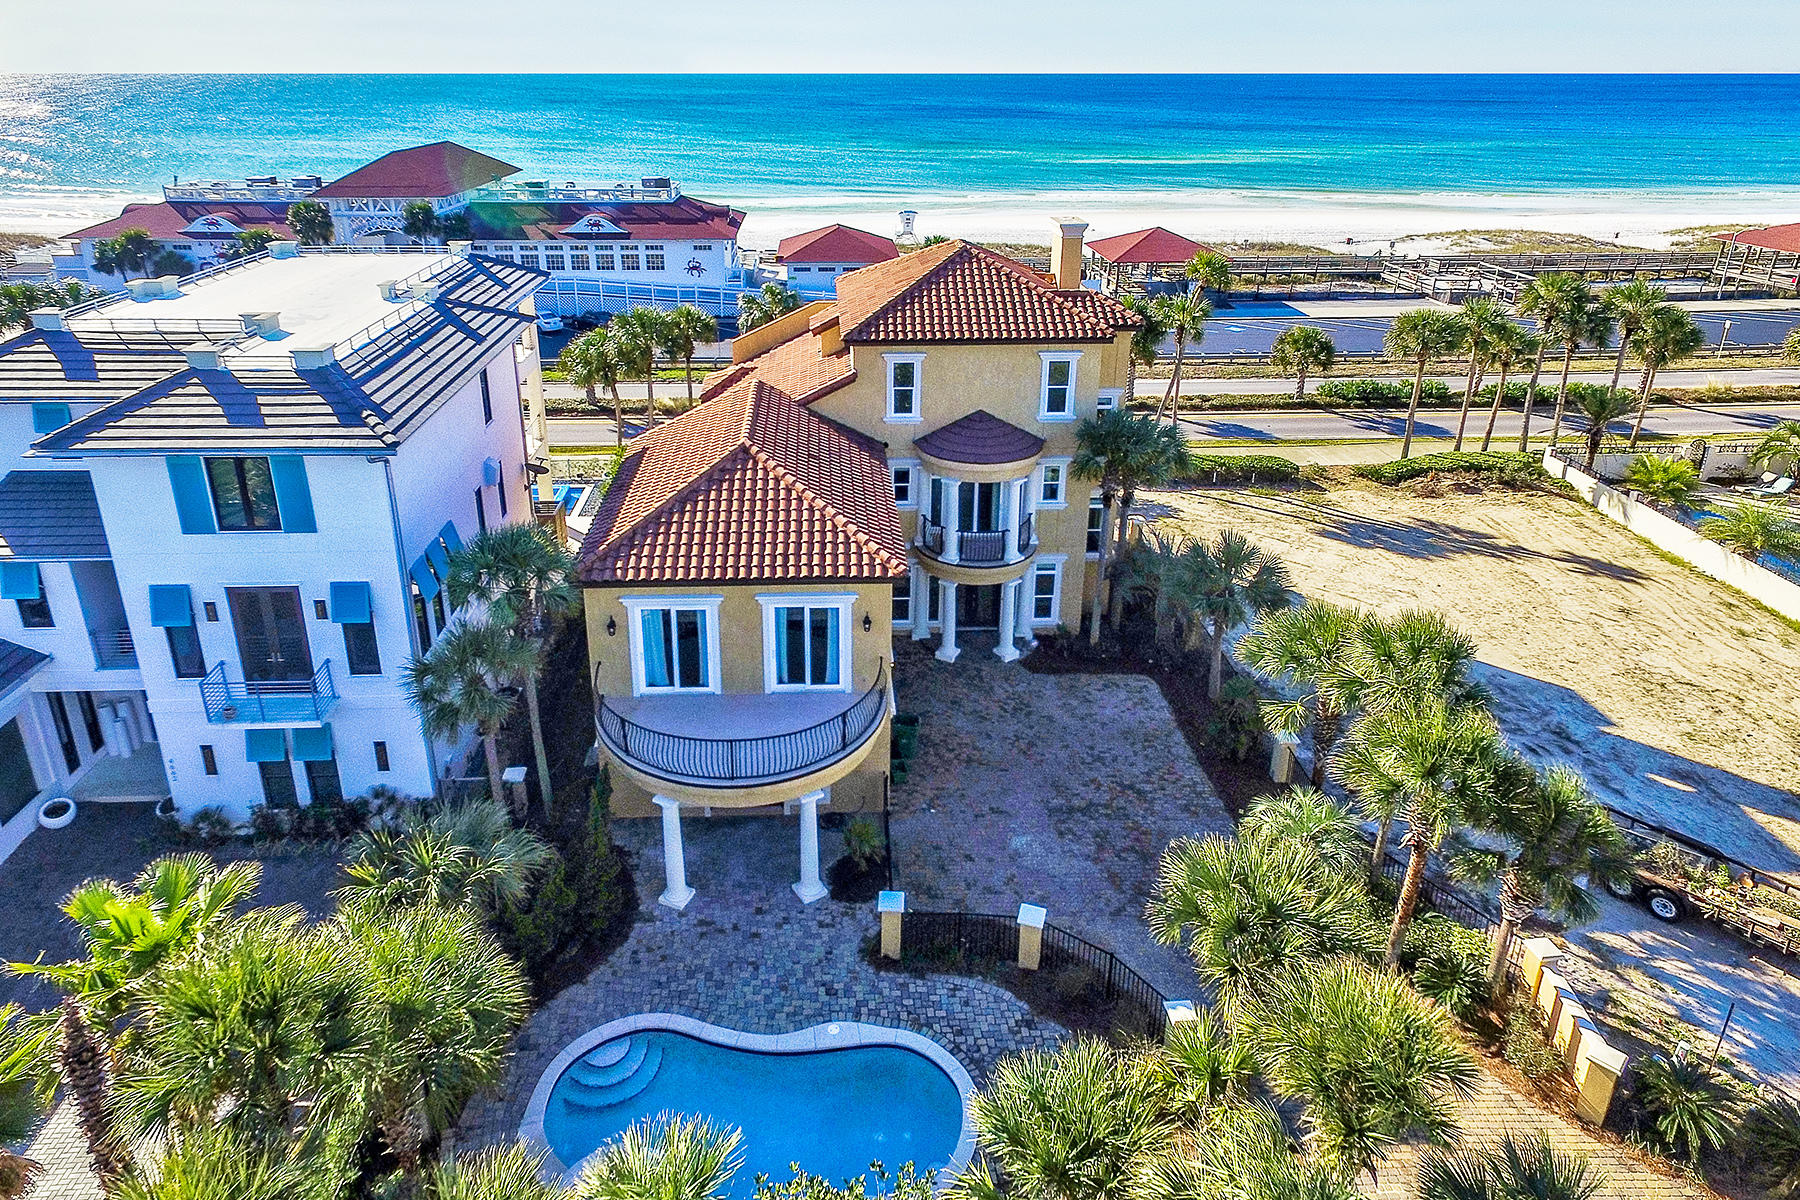 Maison unifamiliale pour l Vente à BEACH SIDE MANOR WITH UNOBSTRUCTED GULF VIEWS 4660 Destiny Way Destin, Florida, 32541 États-Unis